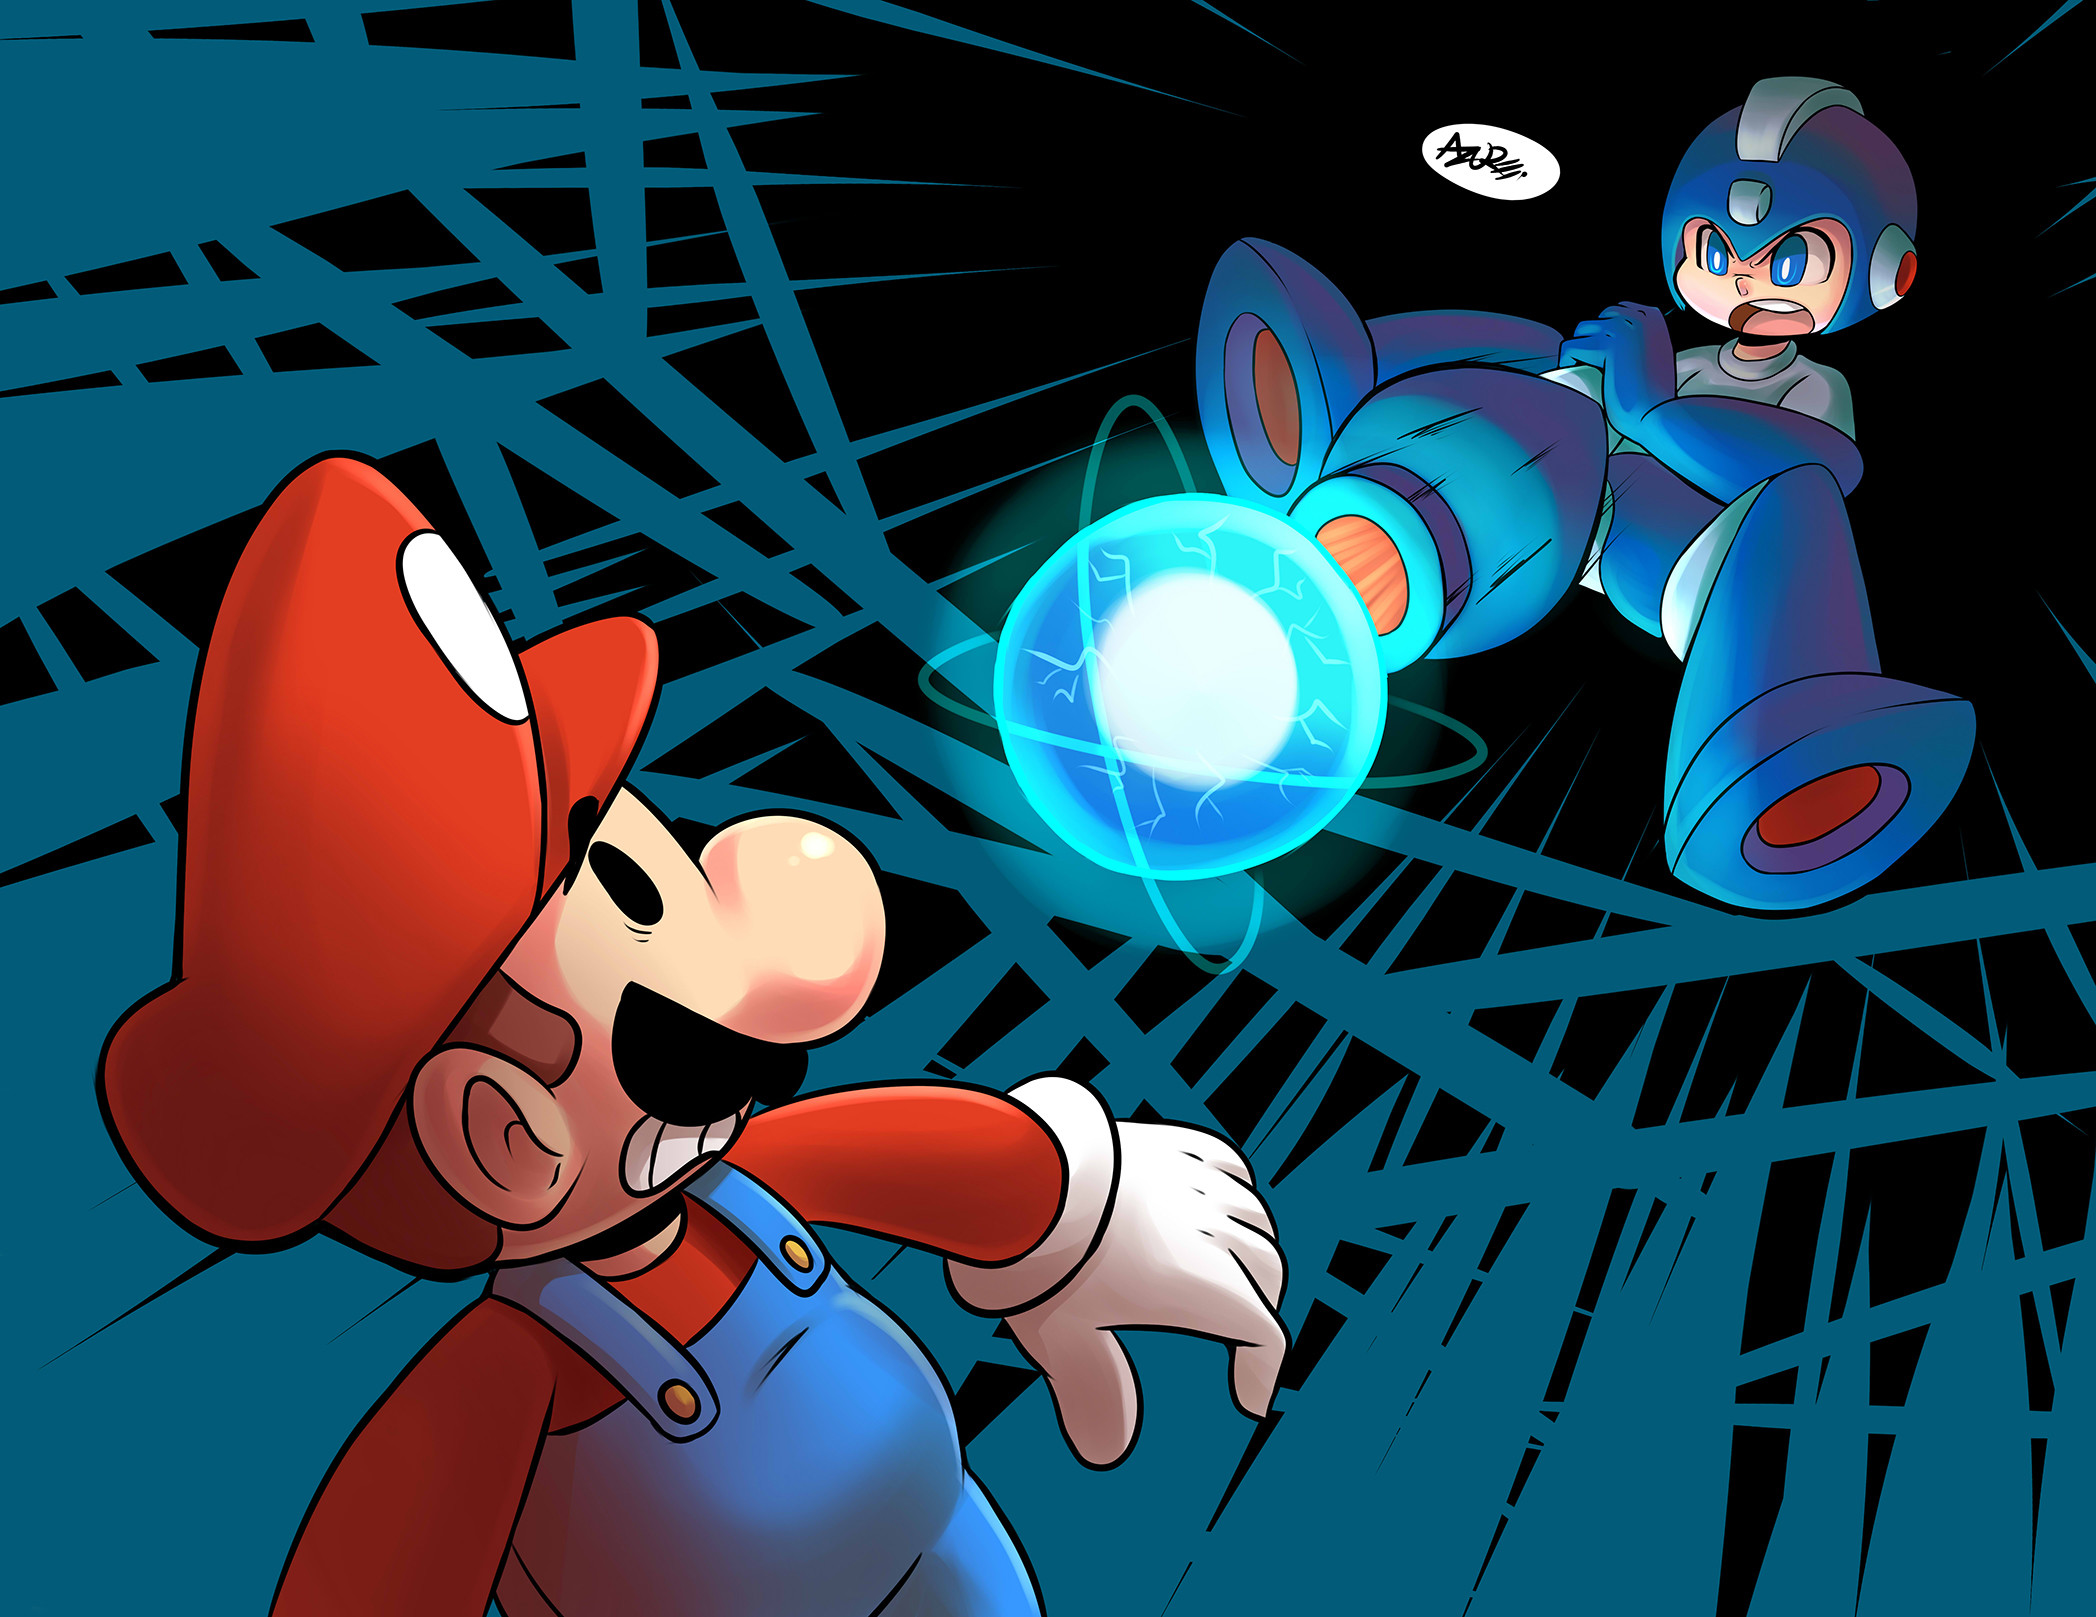 Mega Man Wallpapers. by DylzaLSep 7 2015. Load 153 more images Grid view